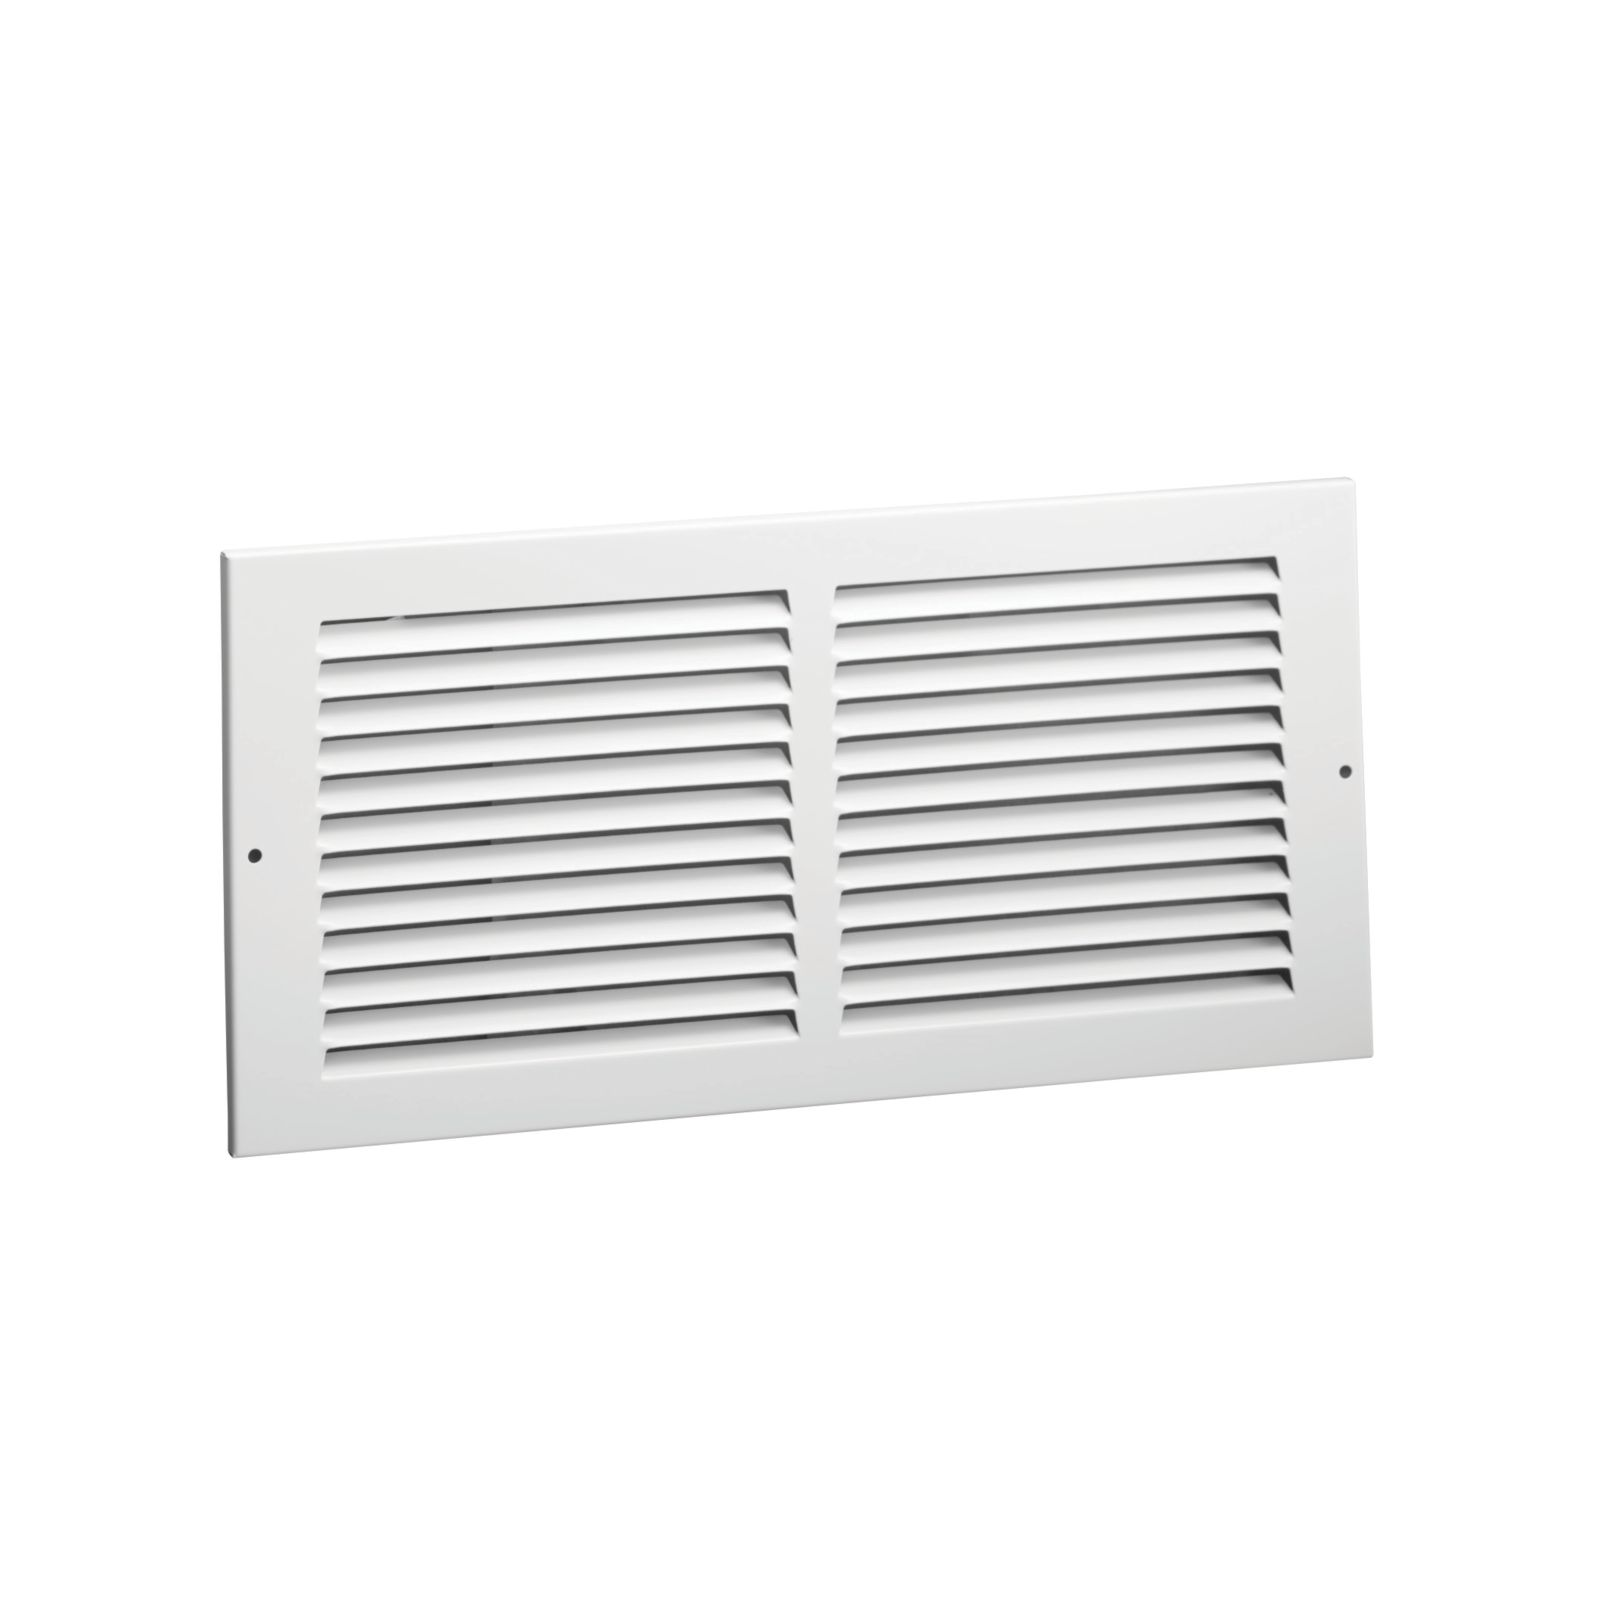 "Hart & Cooley 703986 - #672M Steel Return Air Grille, White Finish, 20"" X 20"""